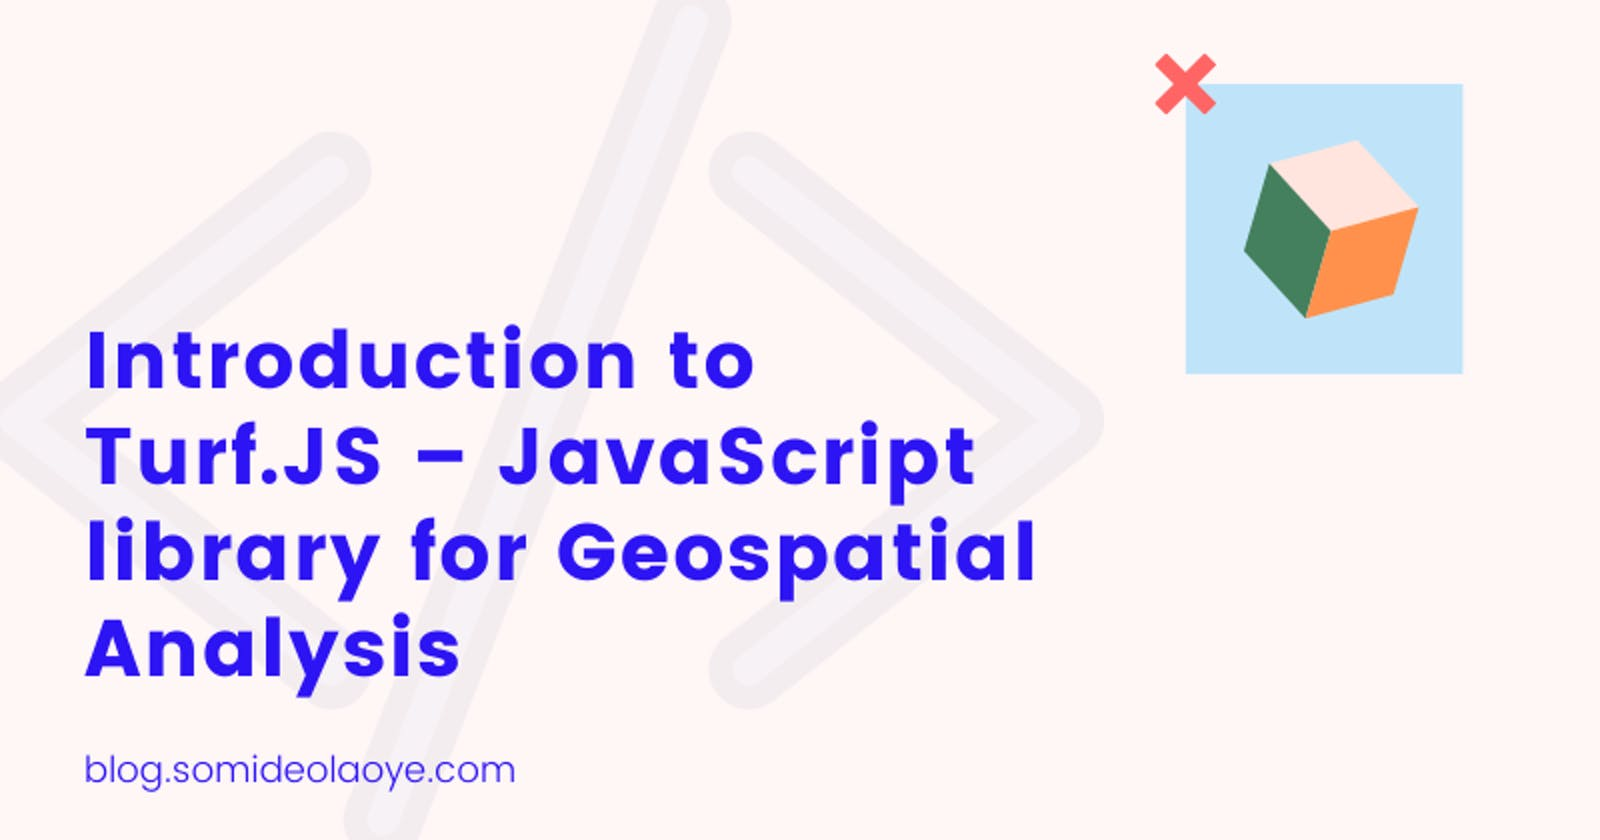 Introduction to Turf.JS – JavaScript library for Geospatial Analysis